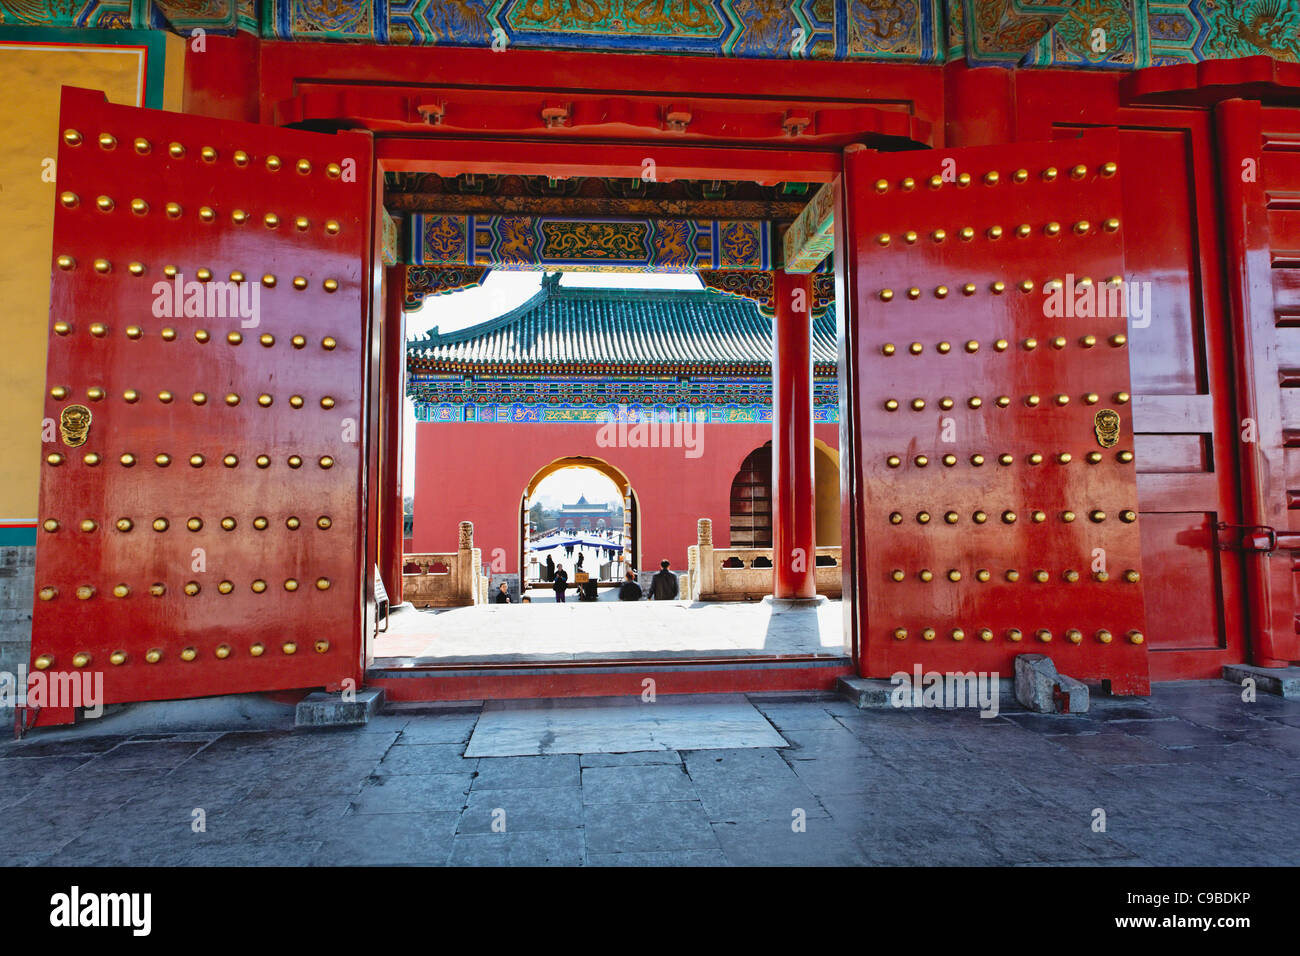 Red Gates with Lucky Number of Studs, Temple of Heaven, Beijing, China - Stock Image